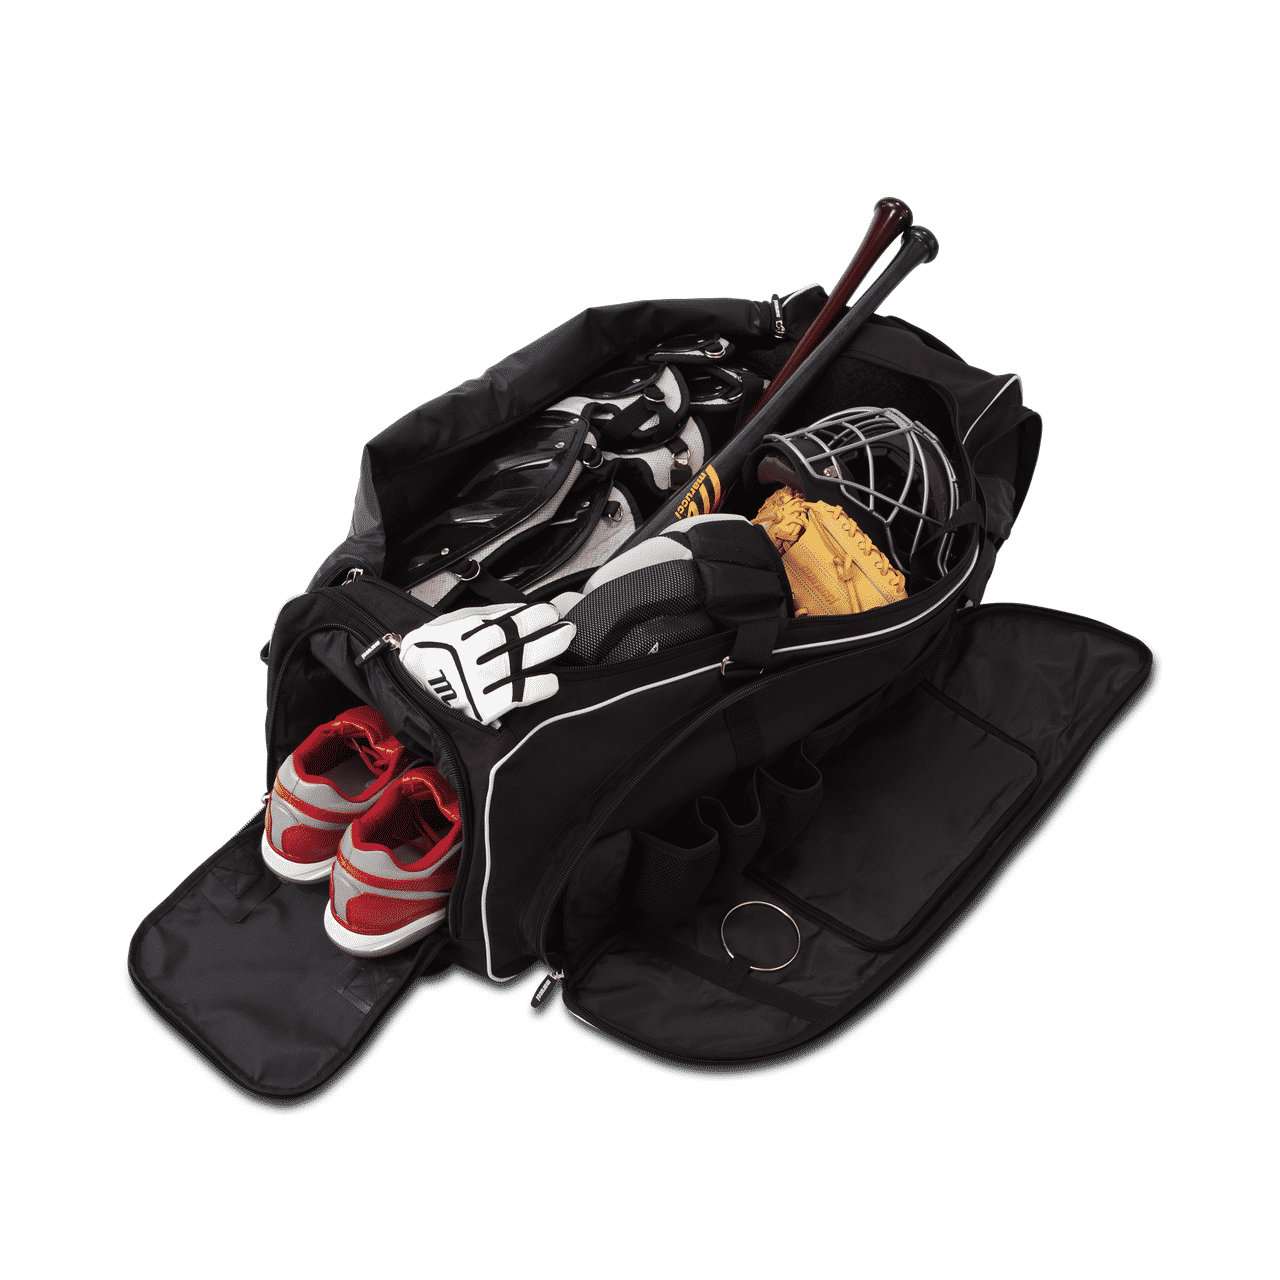 bag to hold marucci catcher's gear